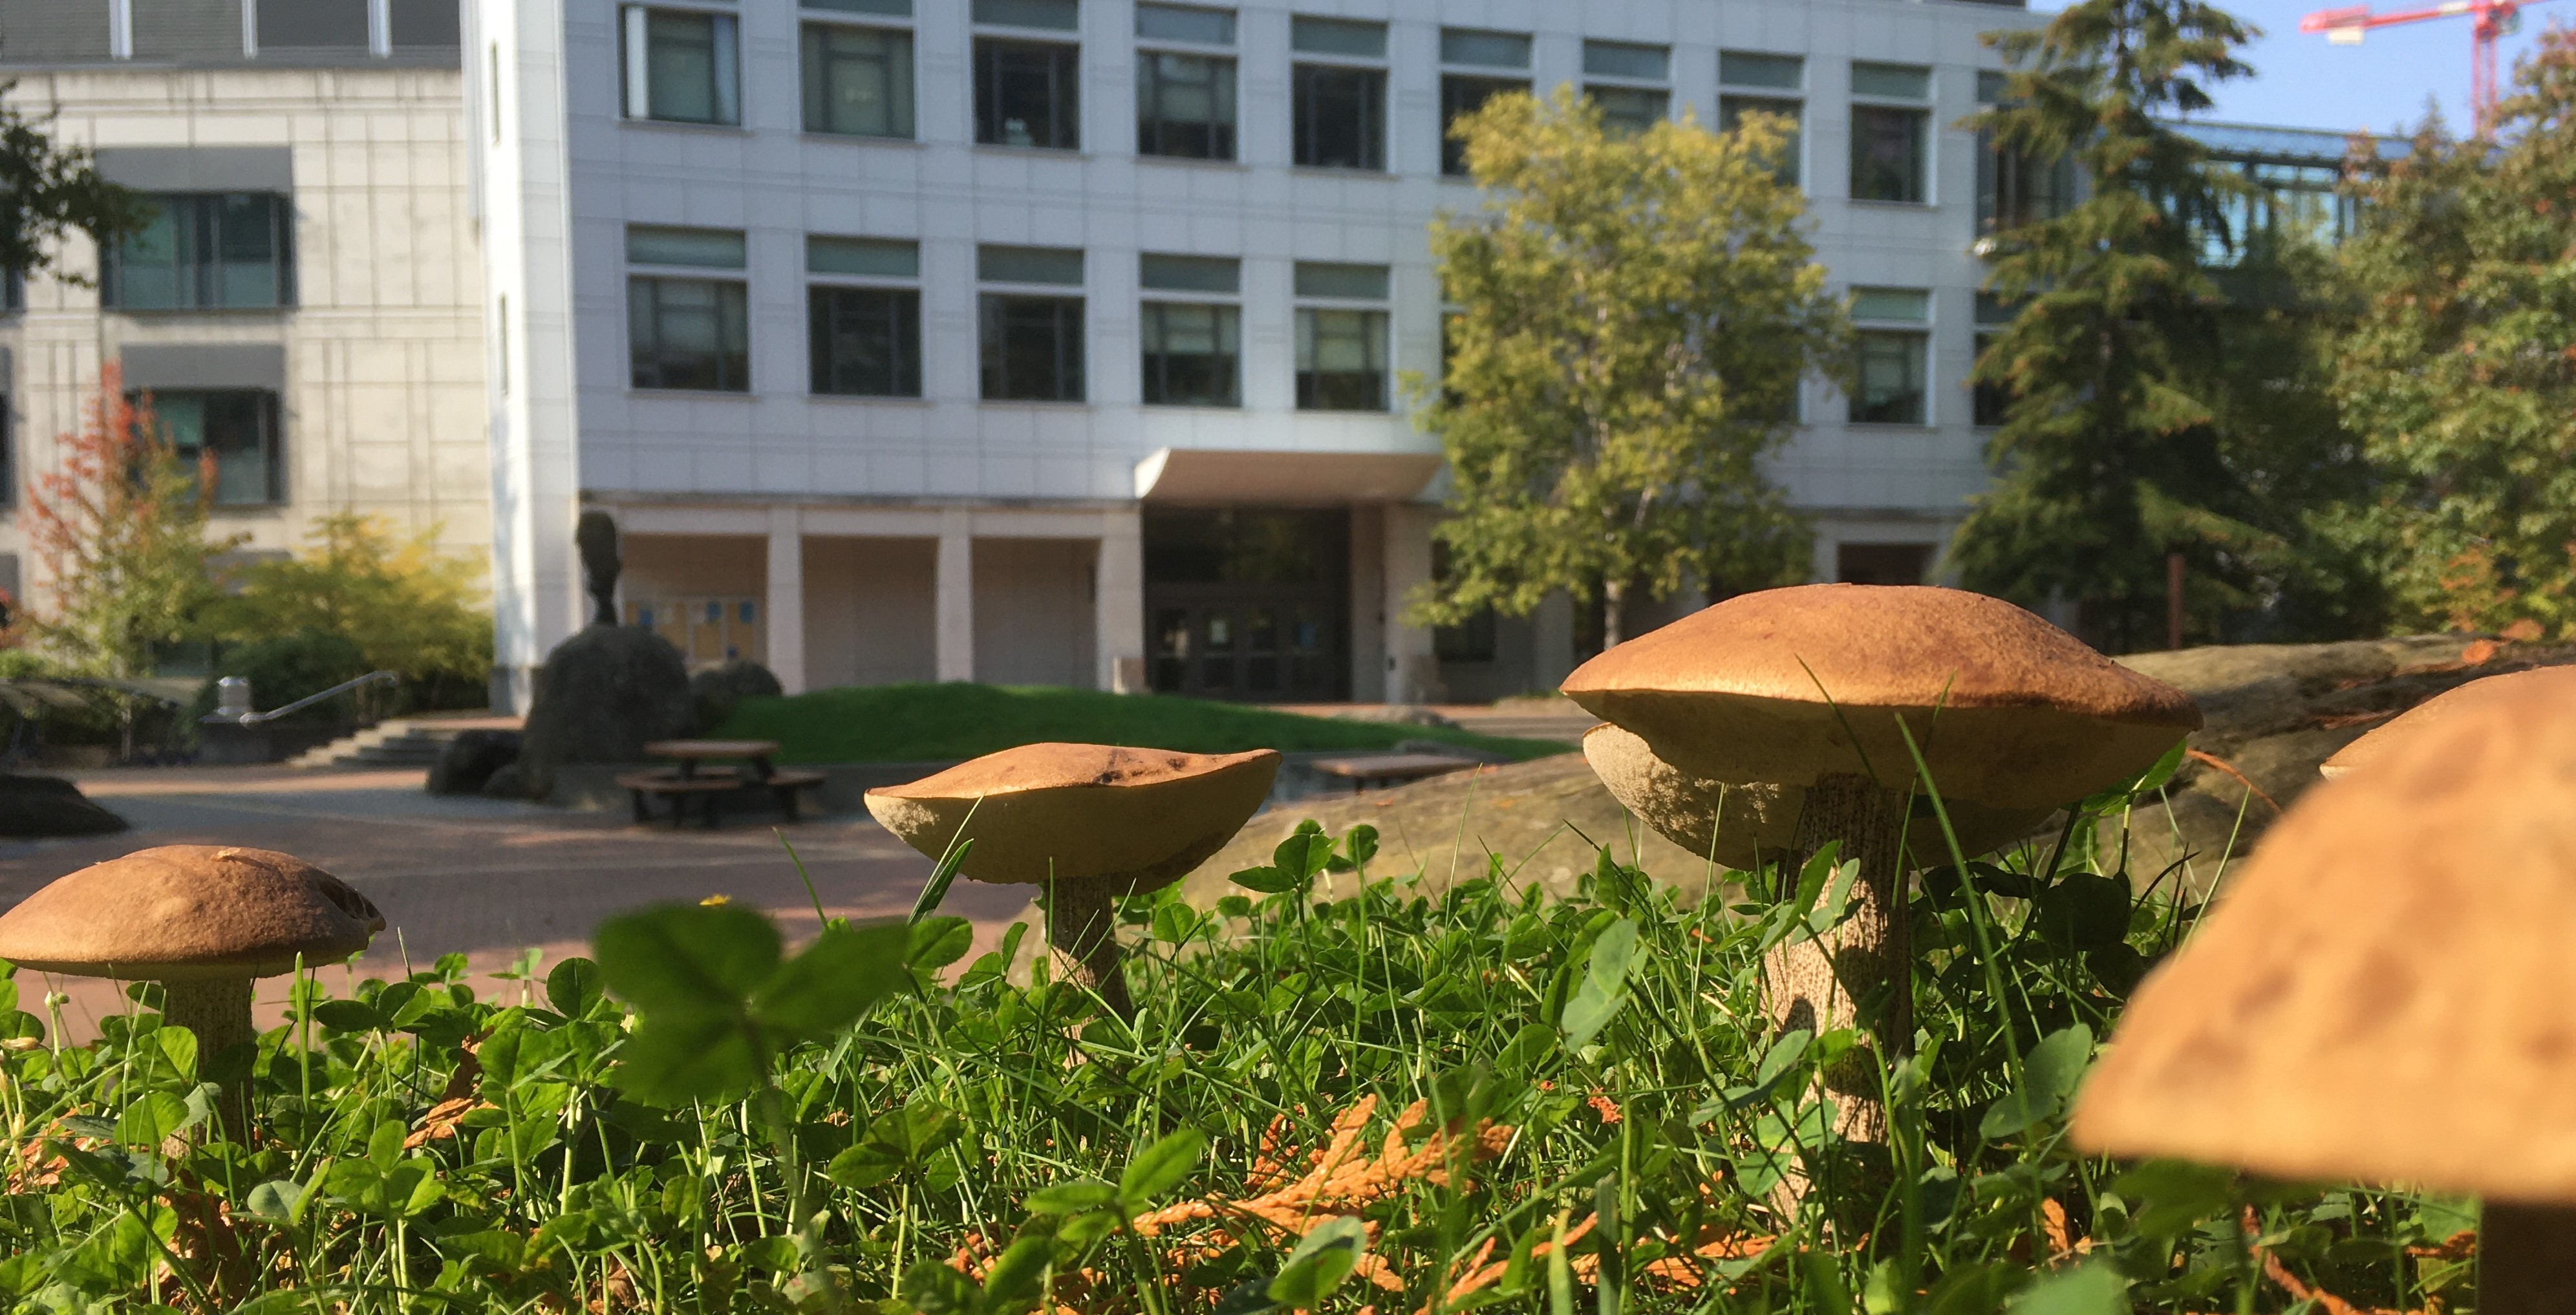 Boletus mushrooms with the Biology Building in the background.